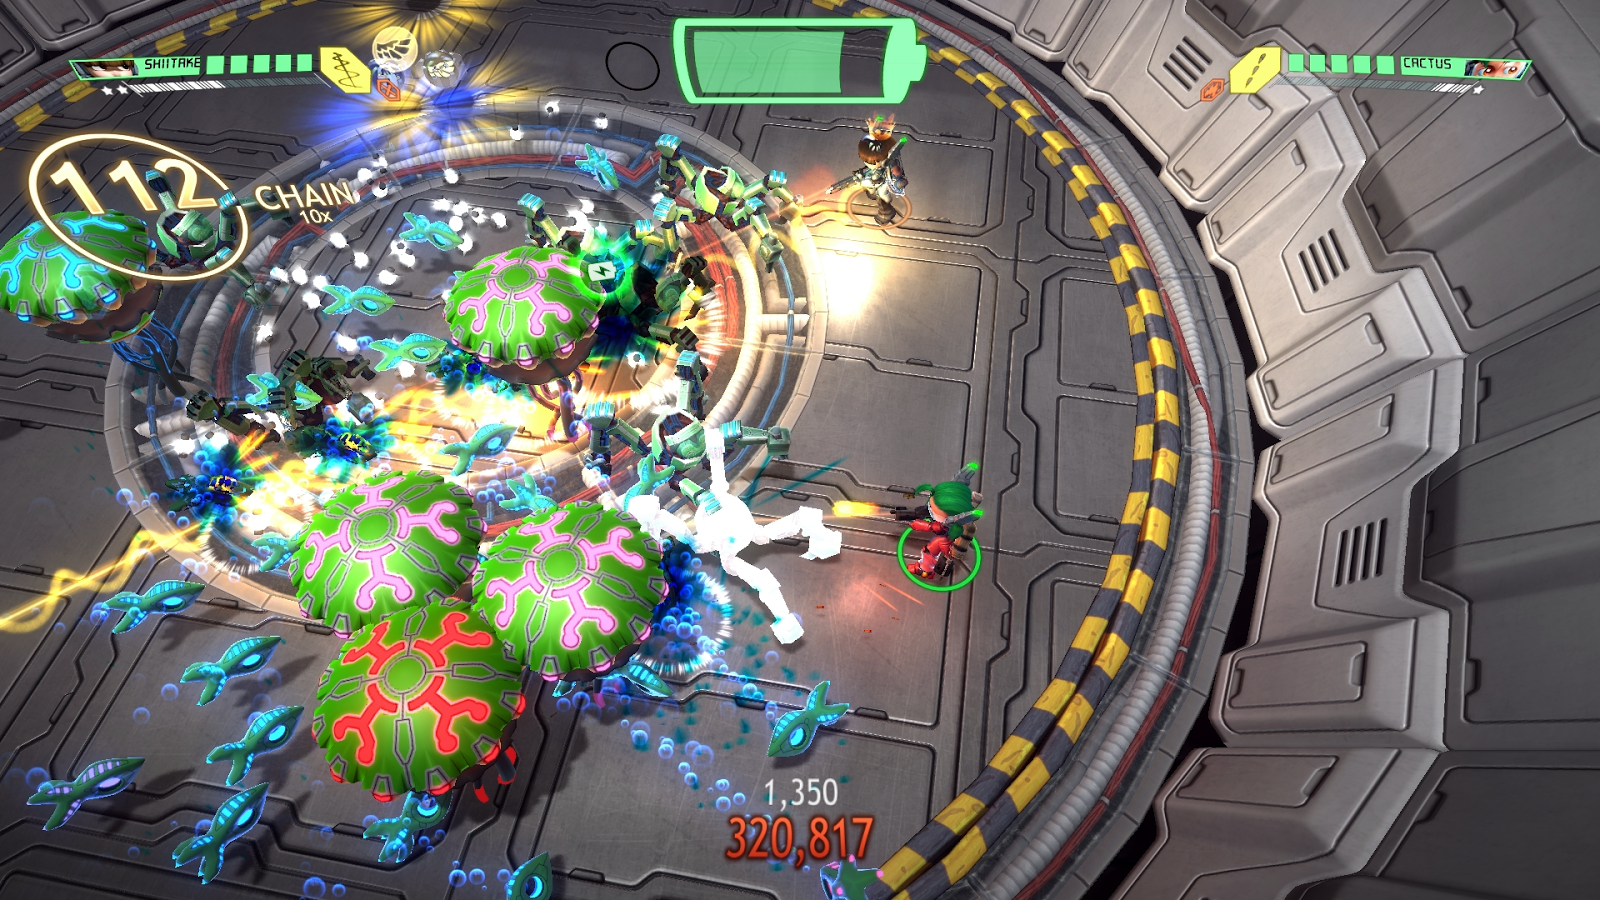 A screenshot from the game Assault Android Cactus. An incredibly chaotic moment in the game as creatures, spiderbots all Duke it out against the player in an oval arena. Floating text indicates that the player has earned a 112 chain of enemies shot bonus.